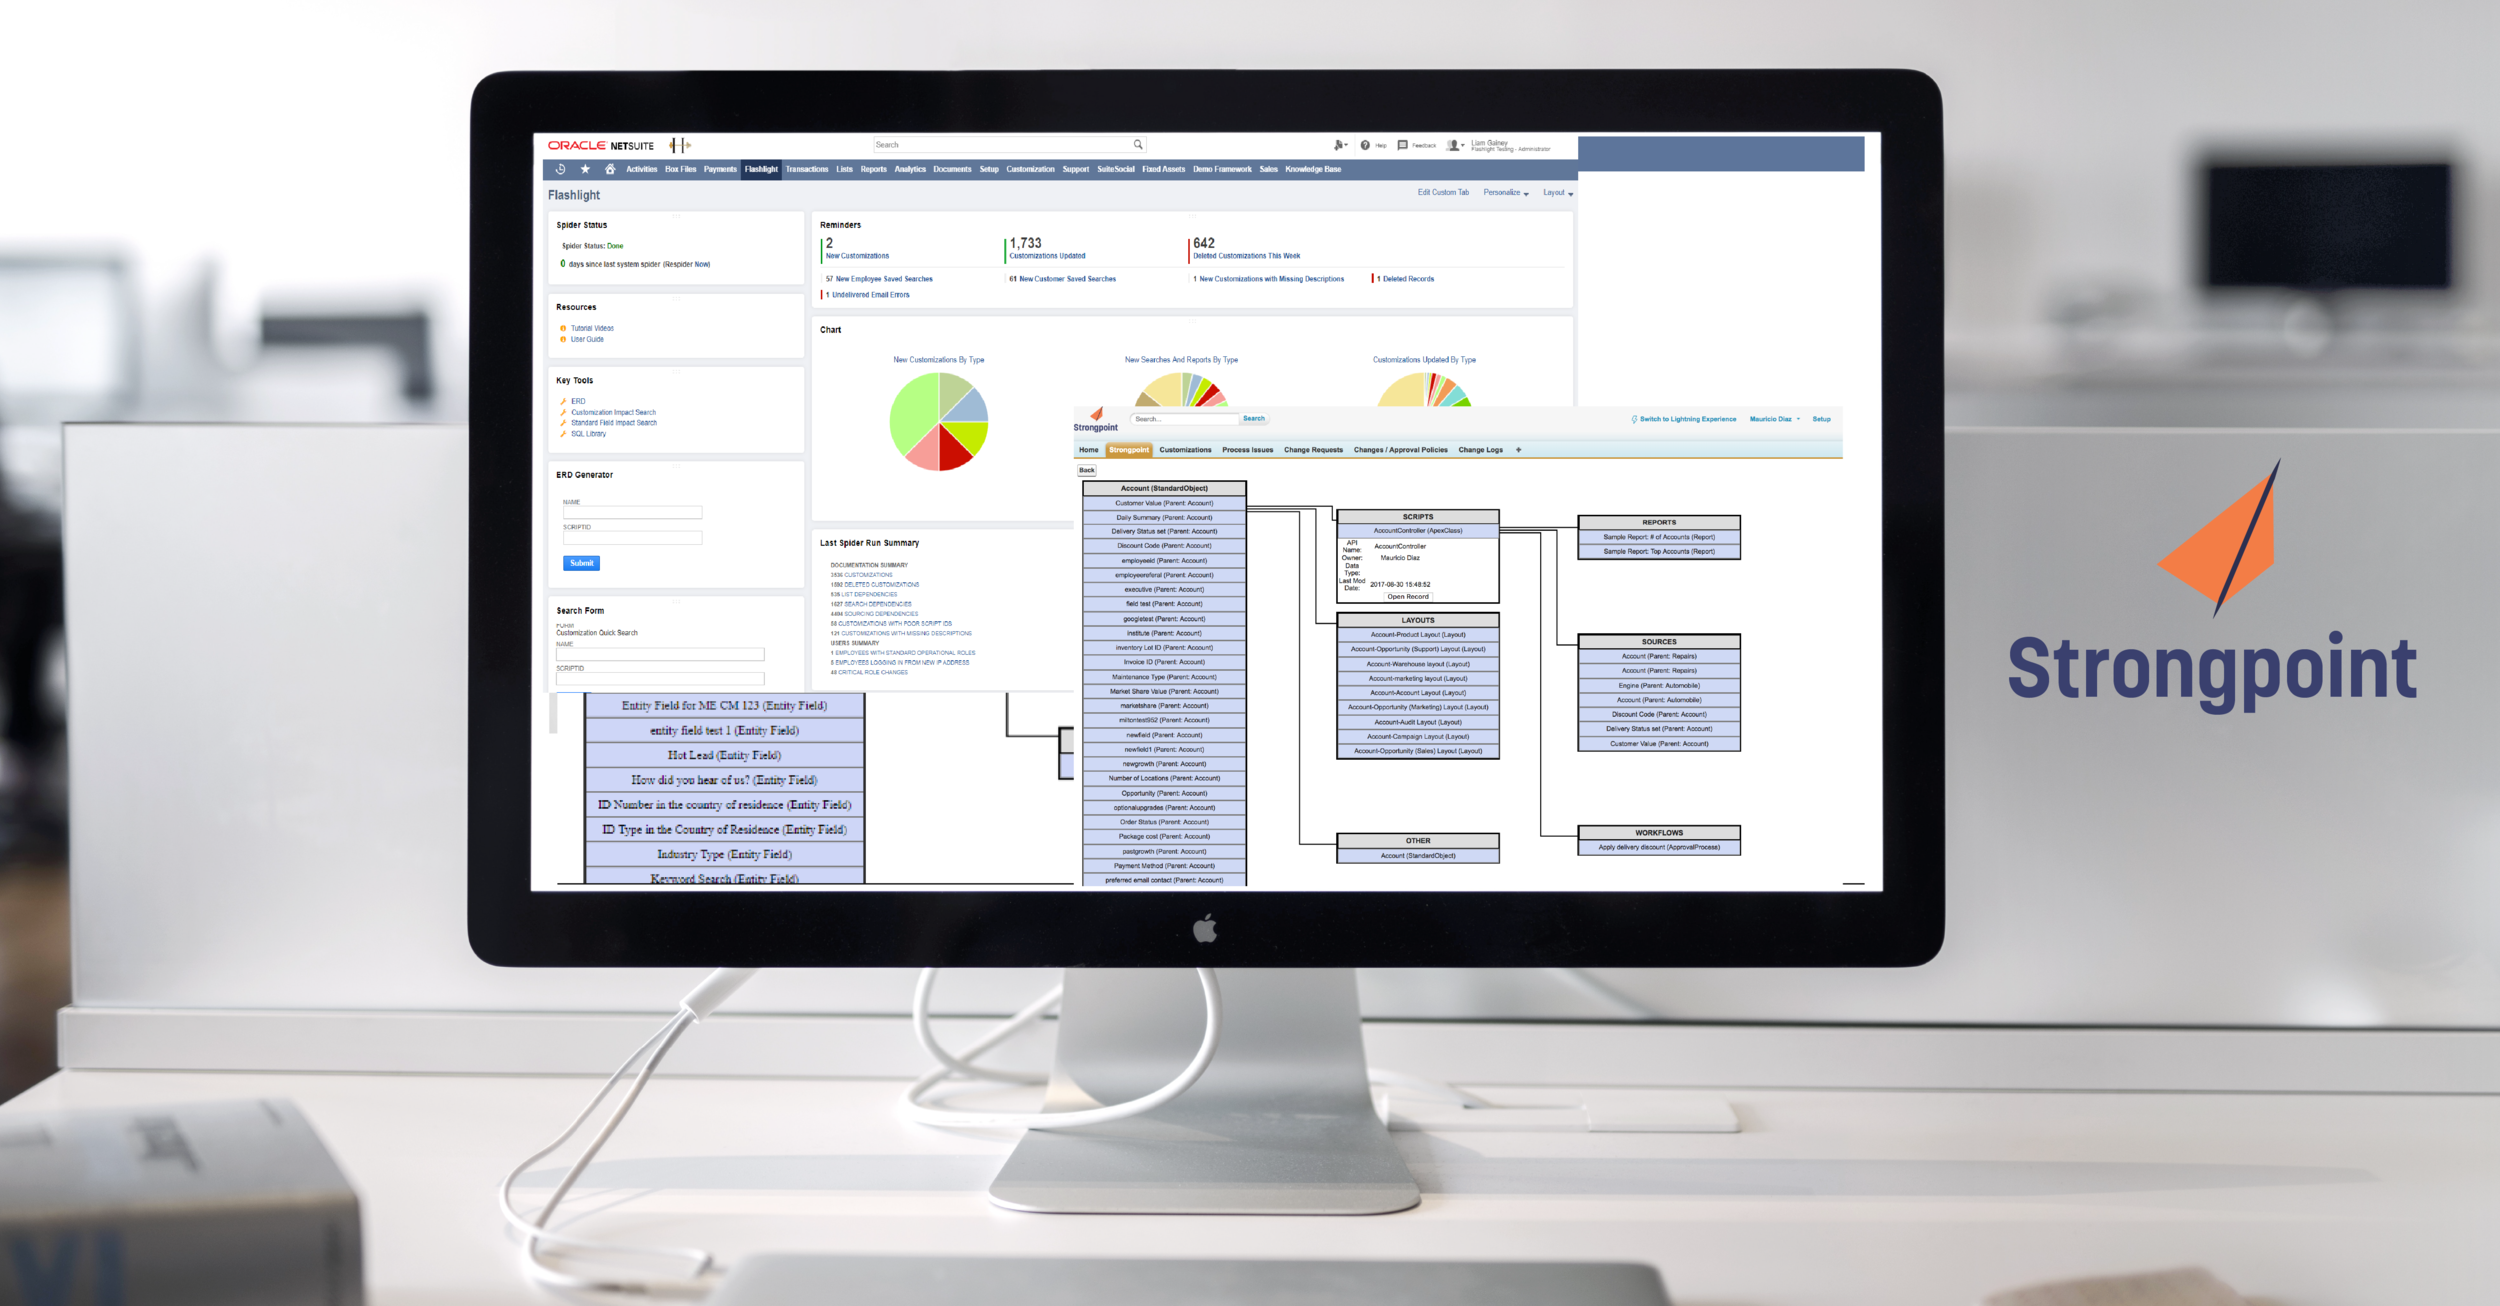 STRONGpoint open demo - Tuesday, July 23 @ 2:00-2:30pm ESTLearn more about how Strongpoint is the fastest and safest way to automatically document your systems, manage changes quickly, and achieve compliance.